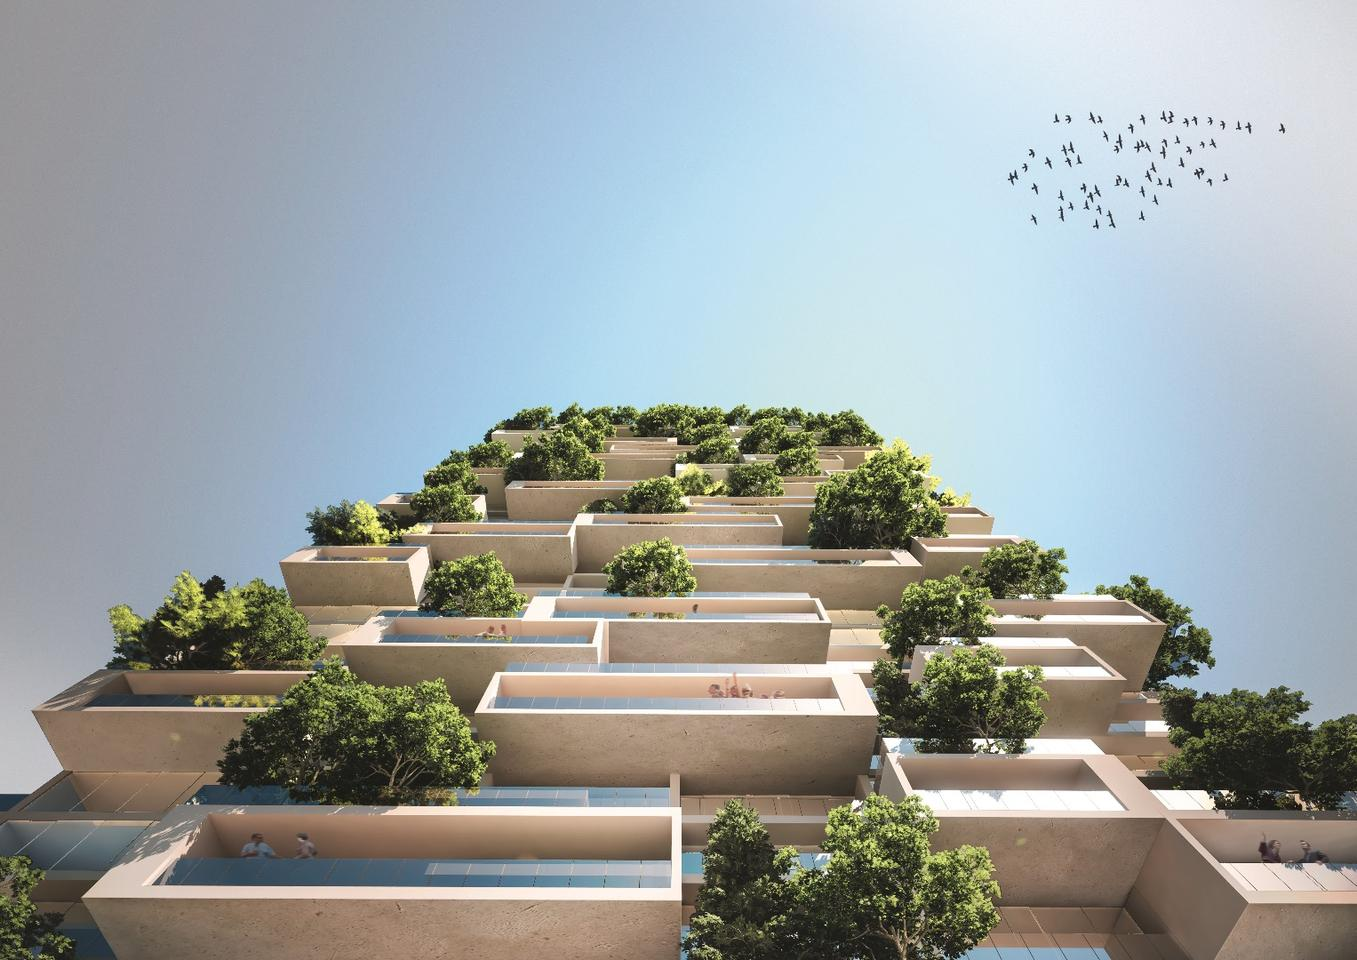 """Following an architectural competition, Italy's Stefano Boeri has been given the nod to design a """"vertical forest"""" for Lausanne, Switzerland"""